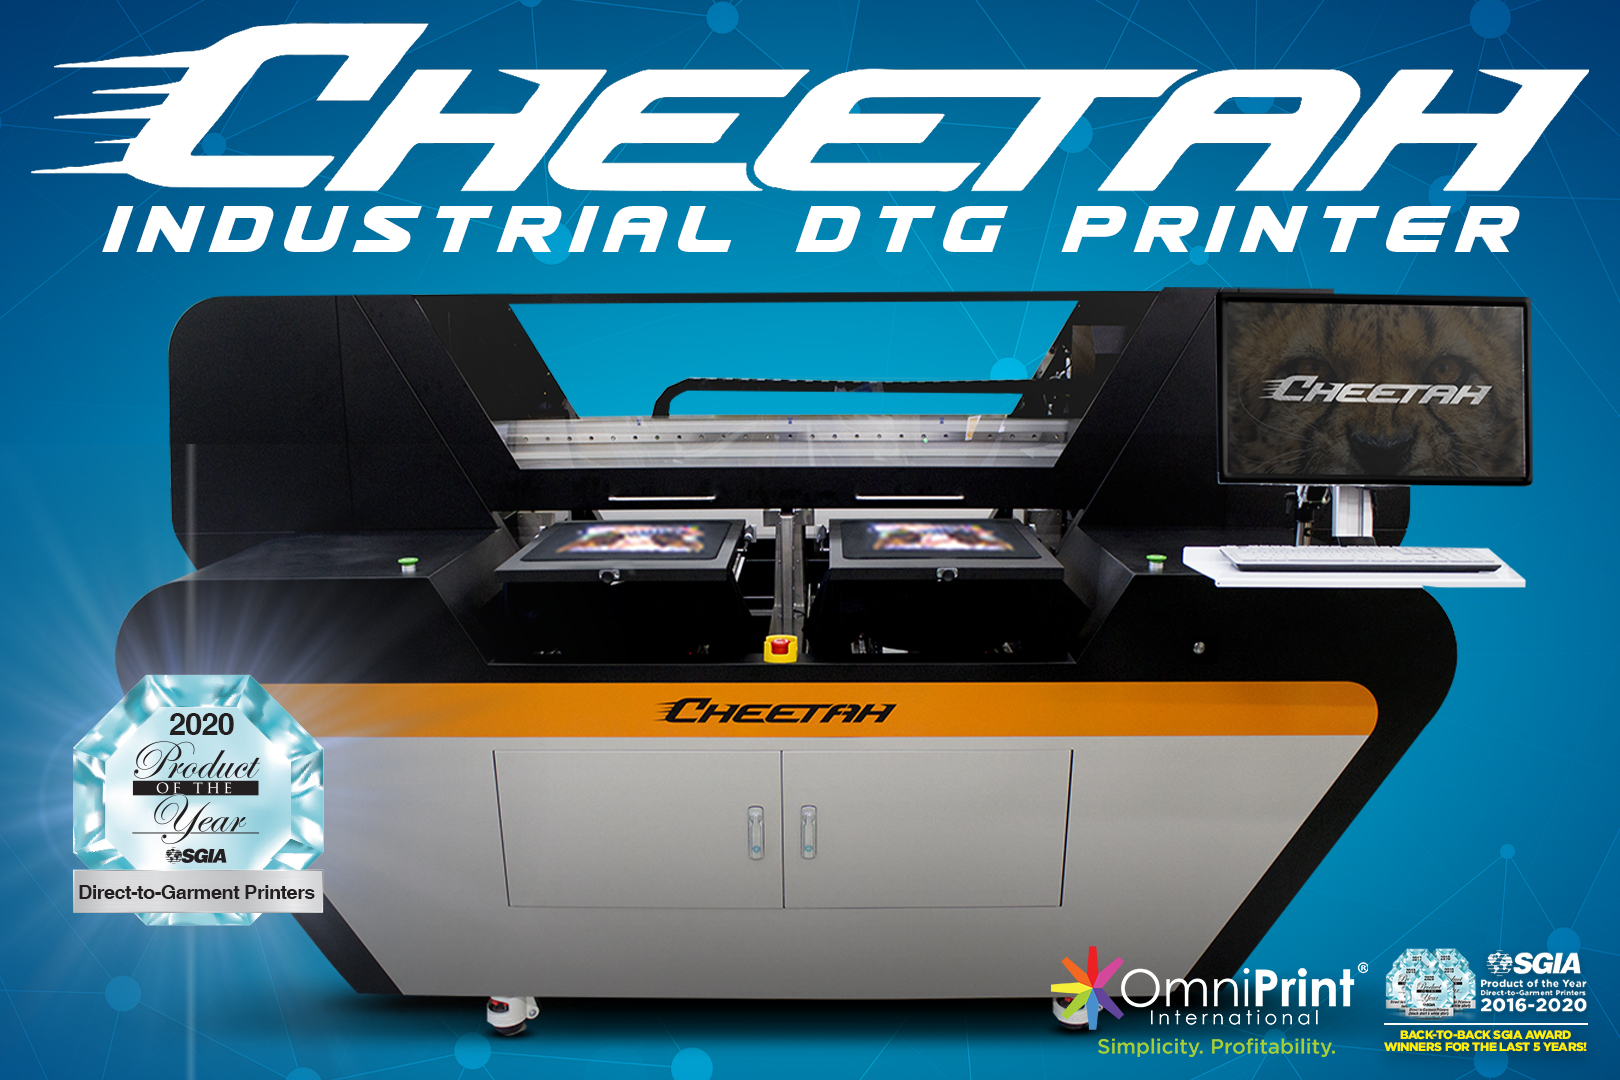 Cheetah Industrial DTG Printer - Product of the Year 2020, OmniPrint International